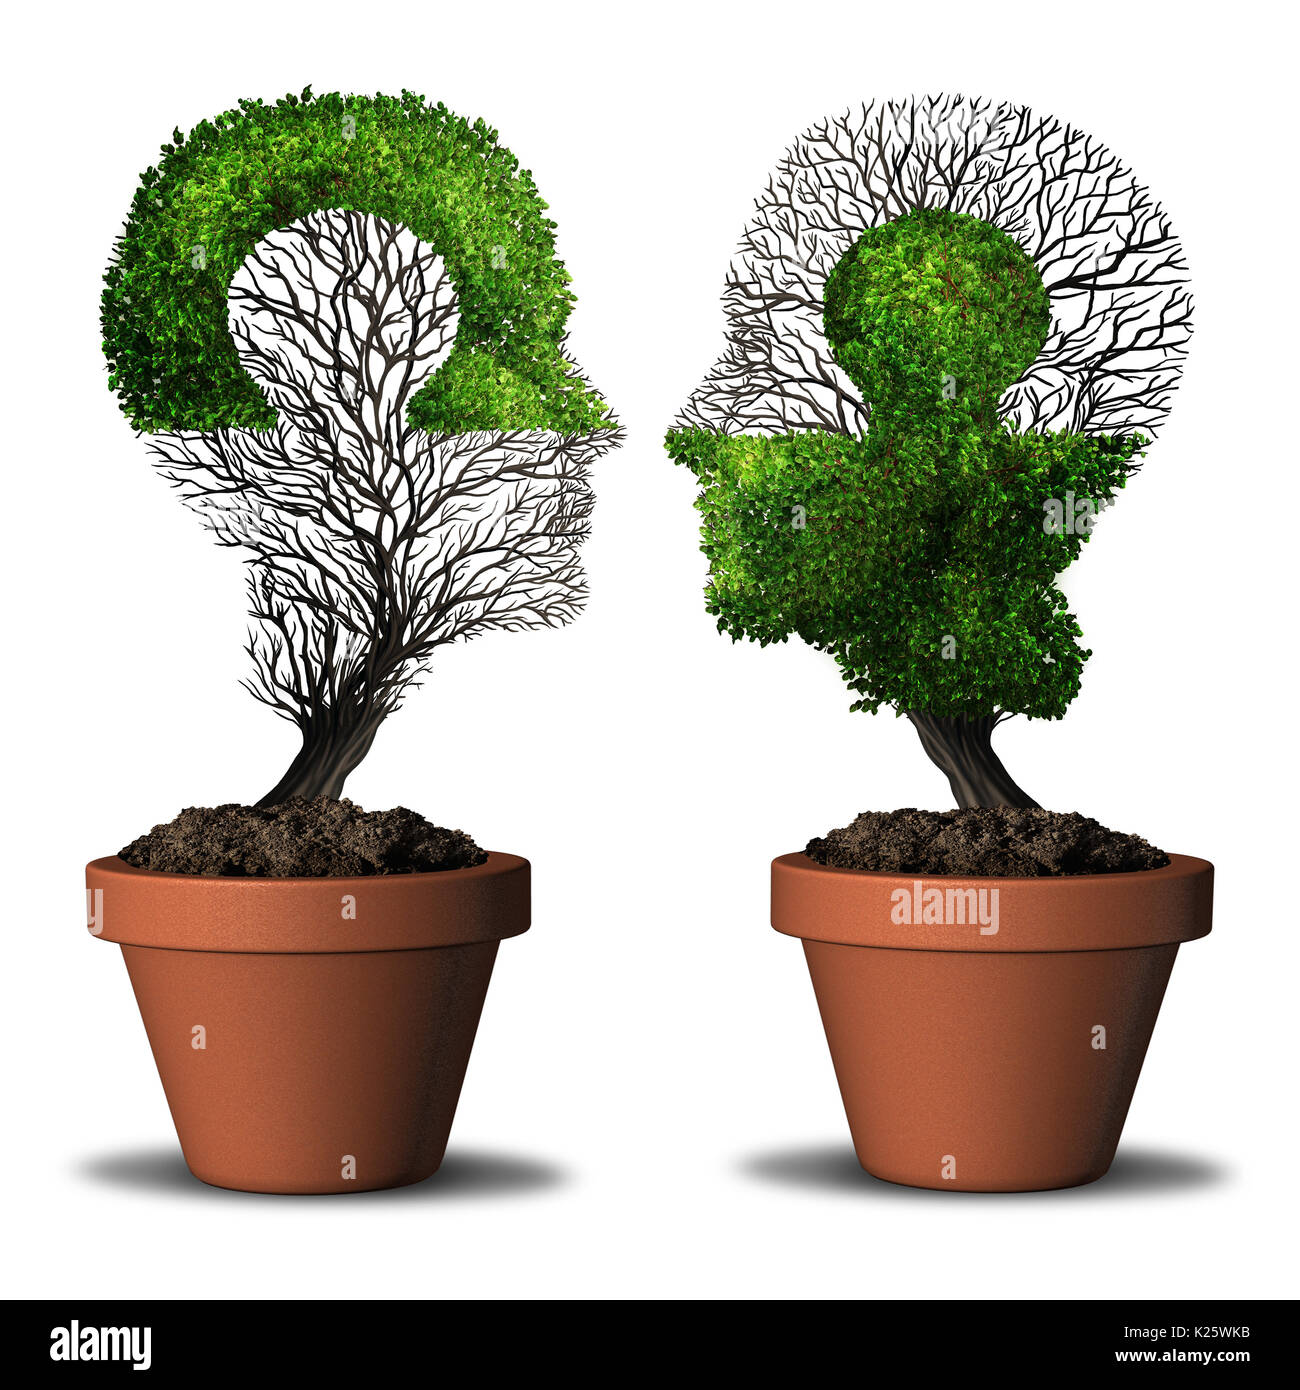 Perfect partner combination relationship and dual friendship concept as two trees shaped as a human head with a jigsaw puzzle. - Stock Image